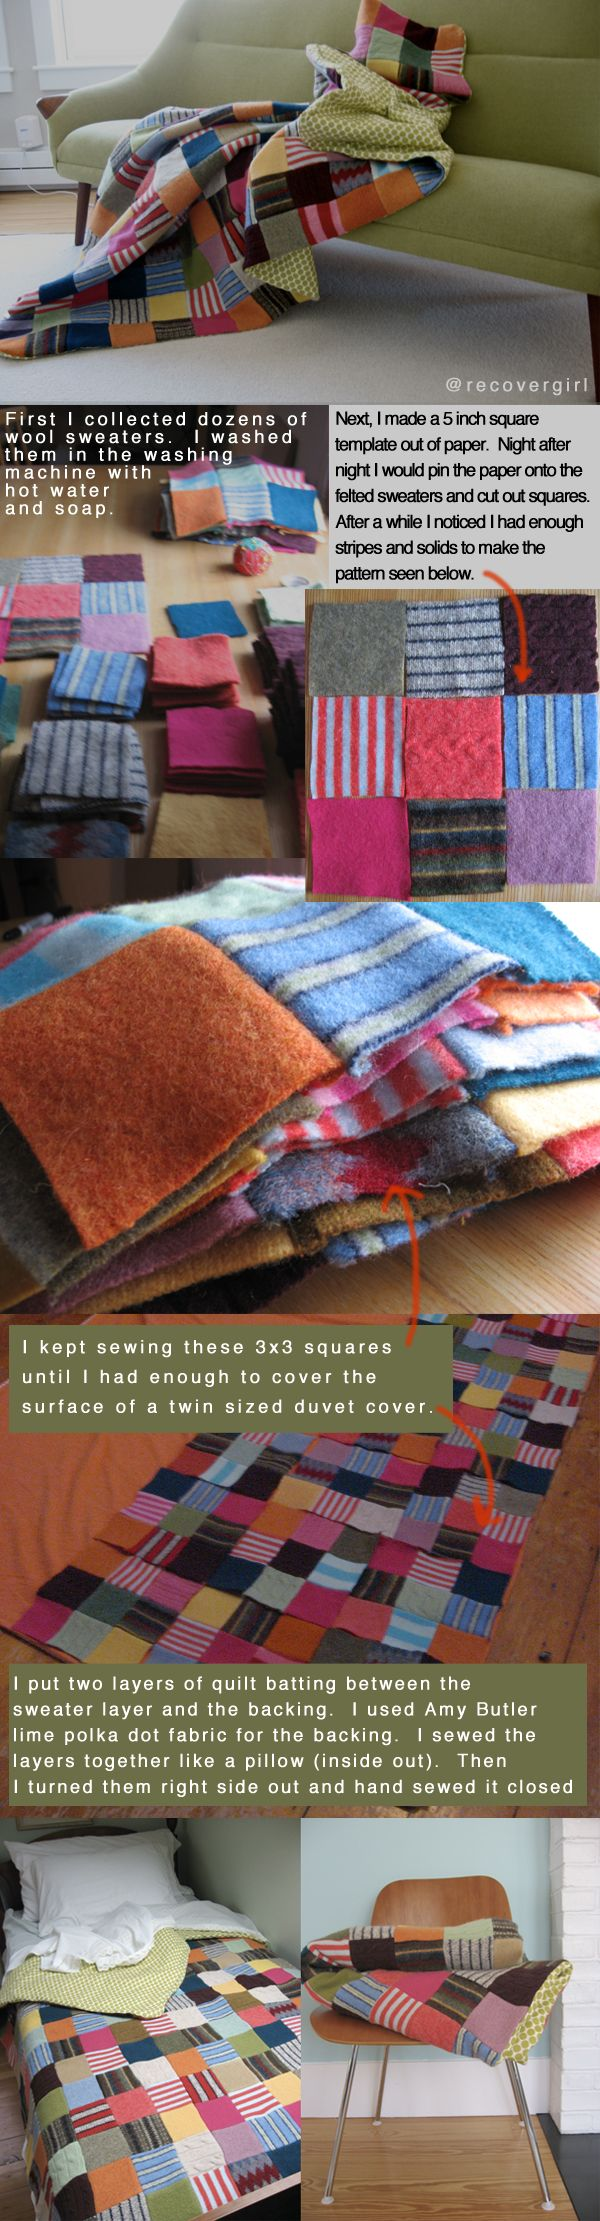 FELTED SWEATER BLANKET | Pinterest | Sweater blanket, Sweater quilt ...